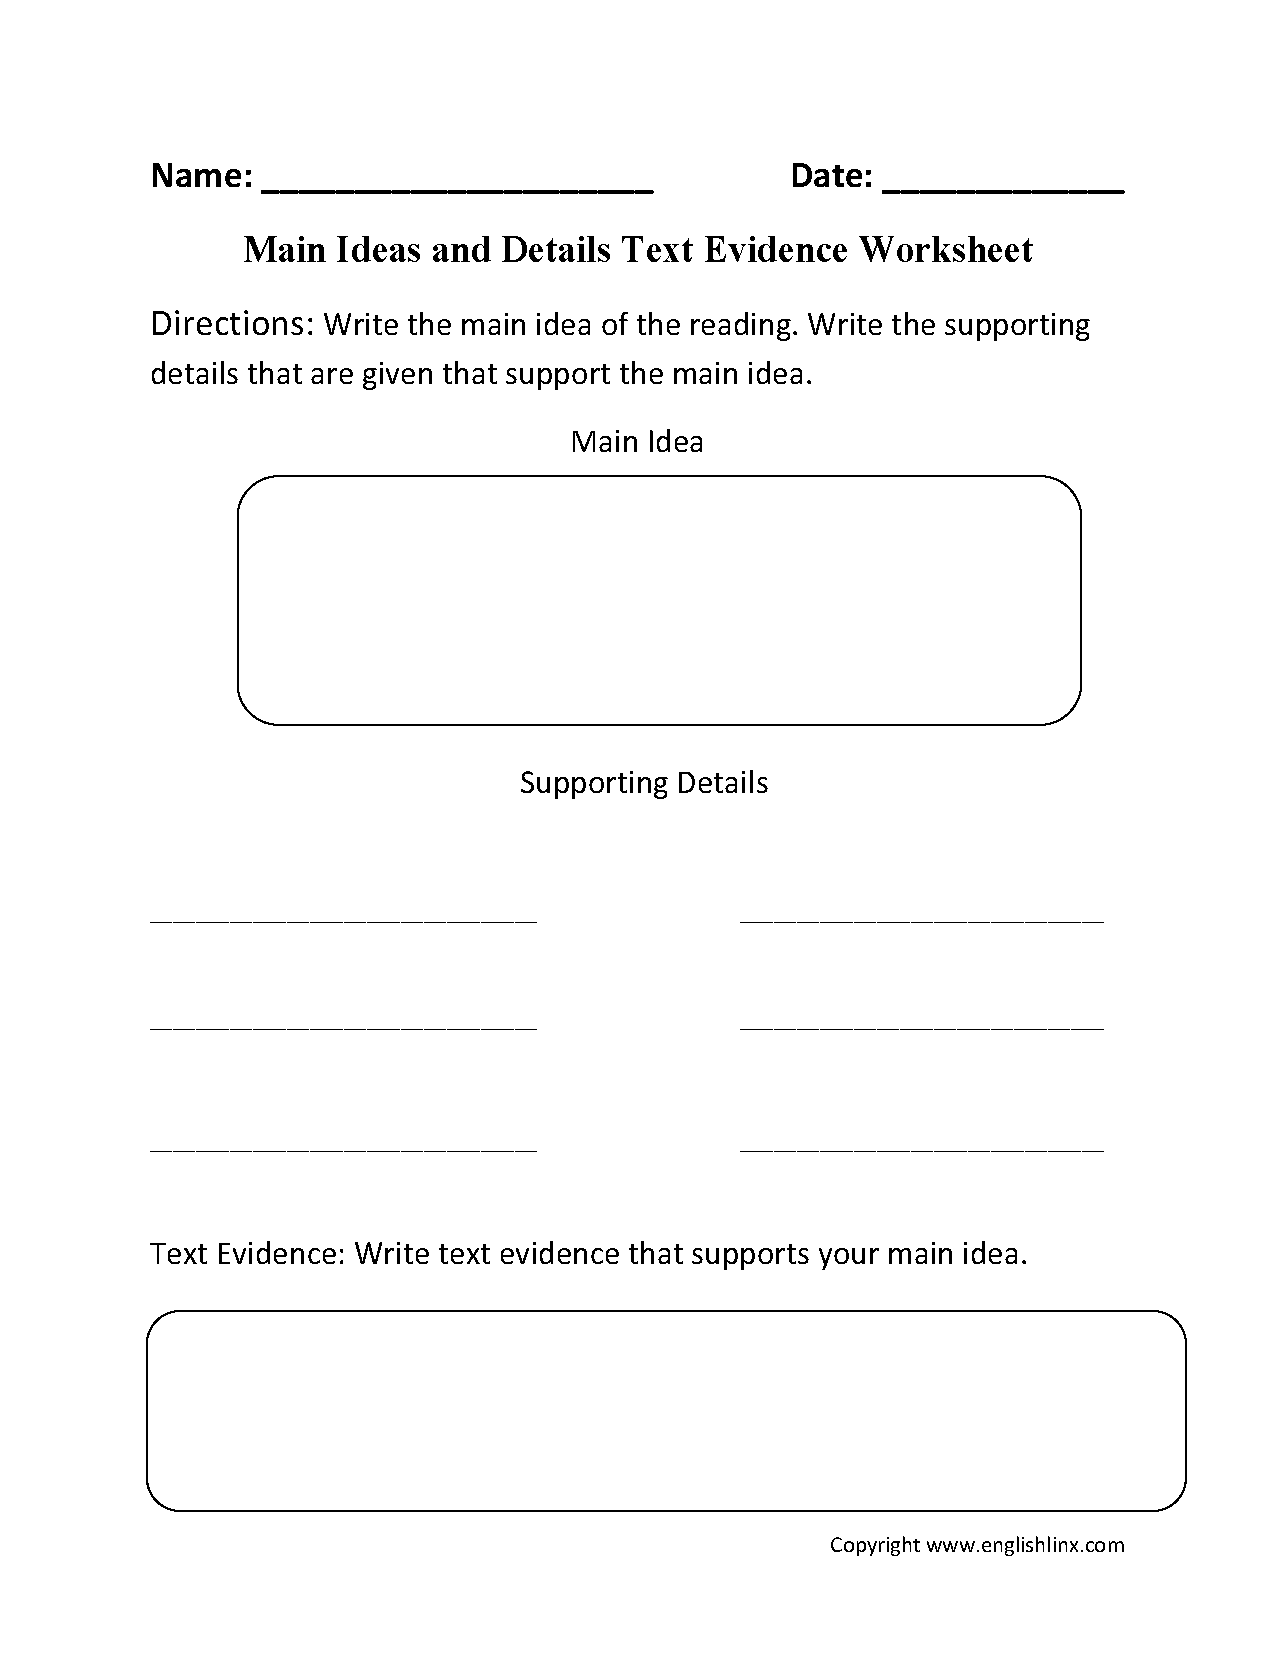 worksheet Main Idea Worksheets For 2nd Grade reading worksheets main idea text evidence worksheet